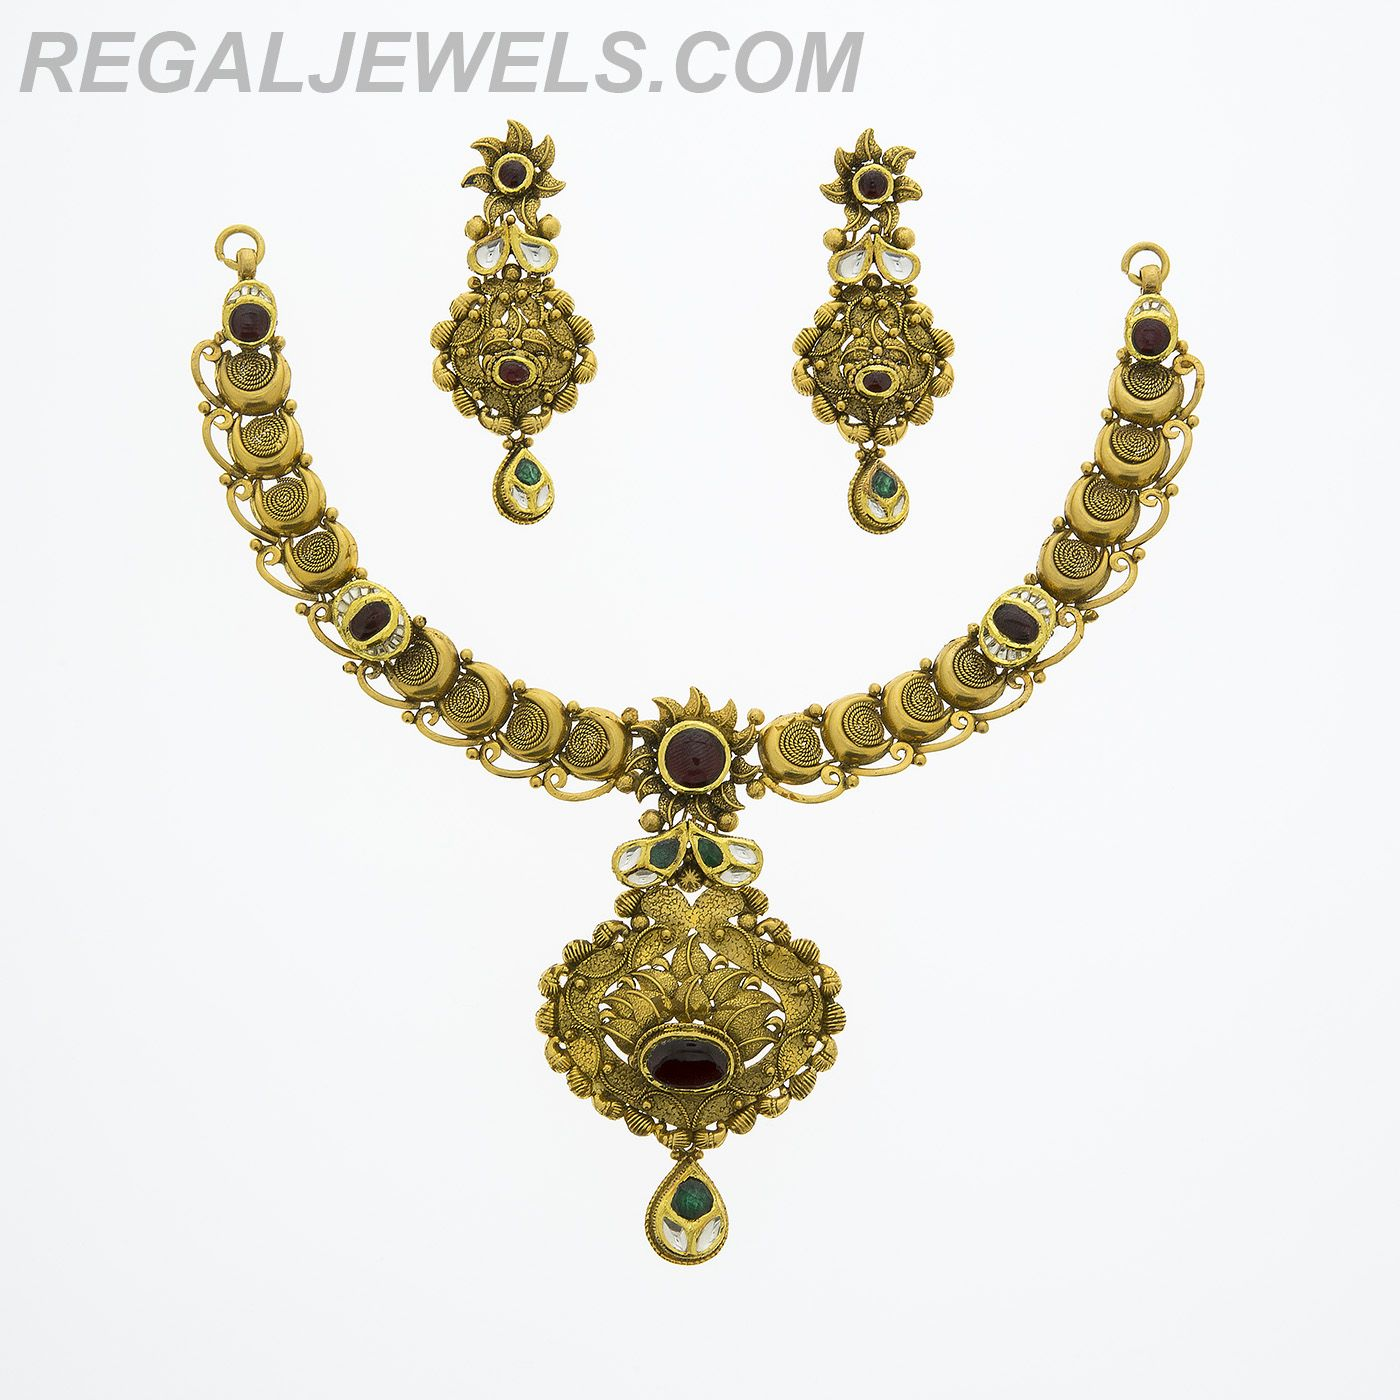 Regal jewels online kt antique finish gold with multi color